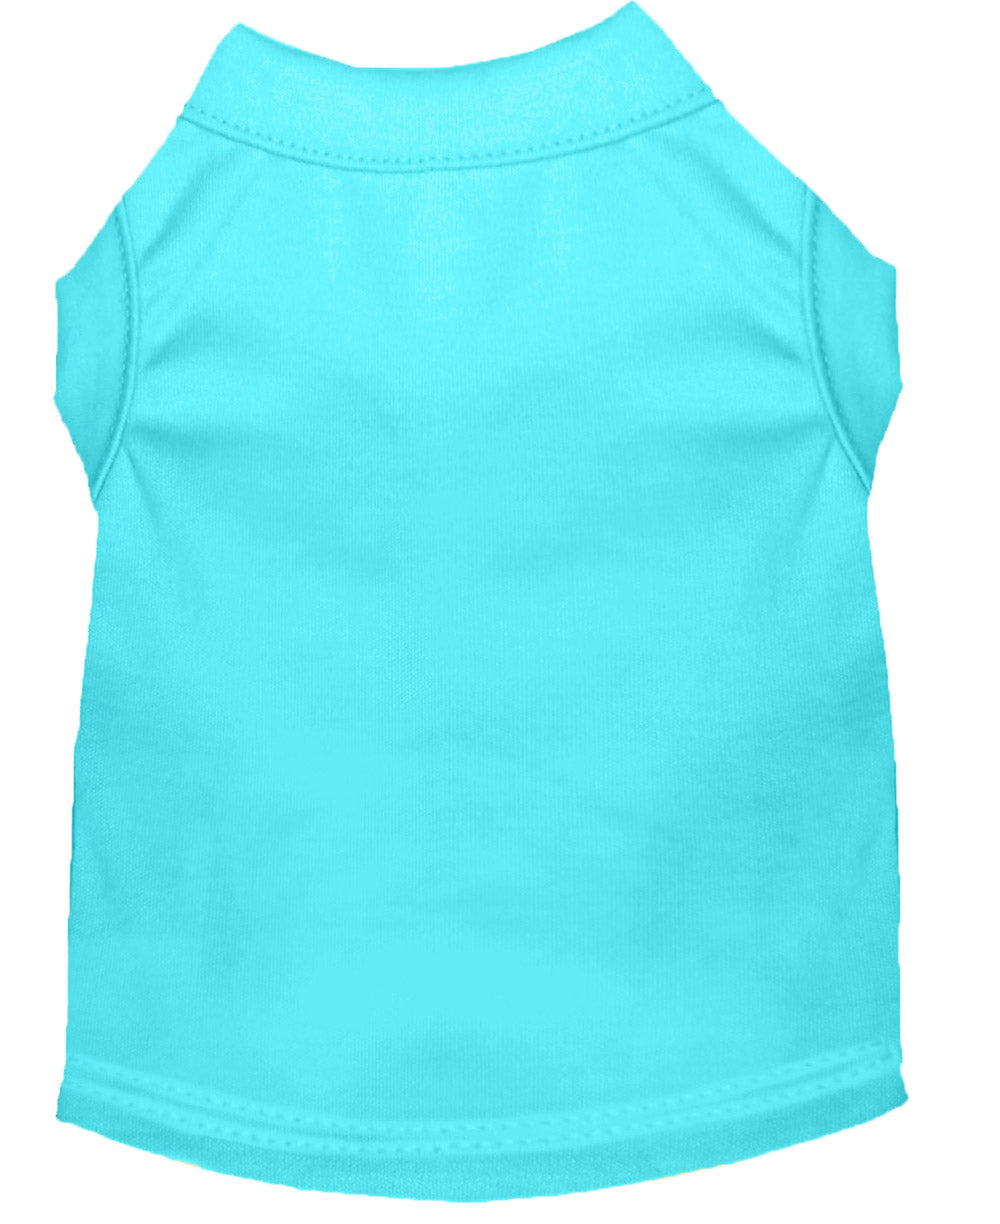 Plain Dog Shirt Aqua